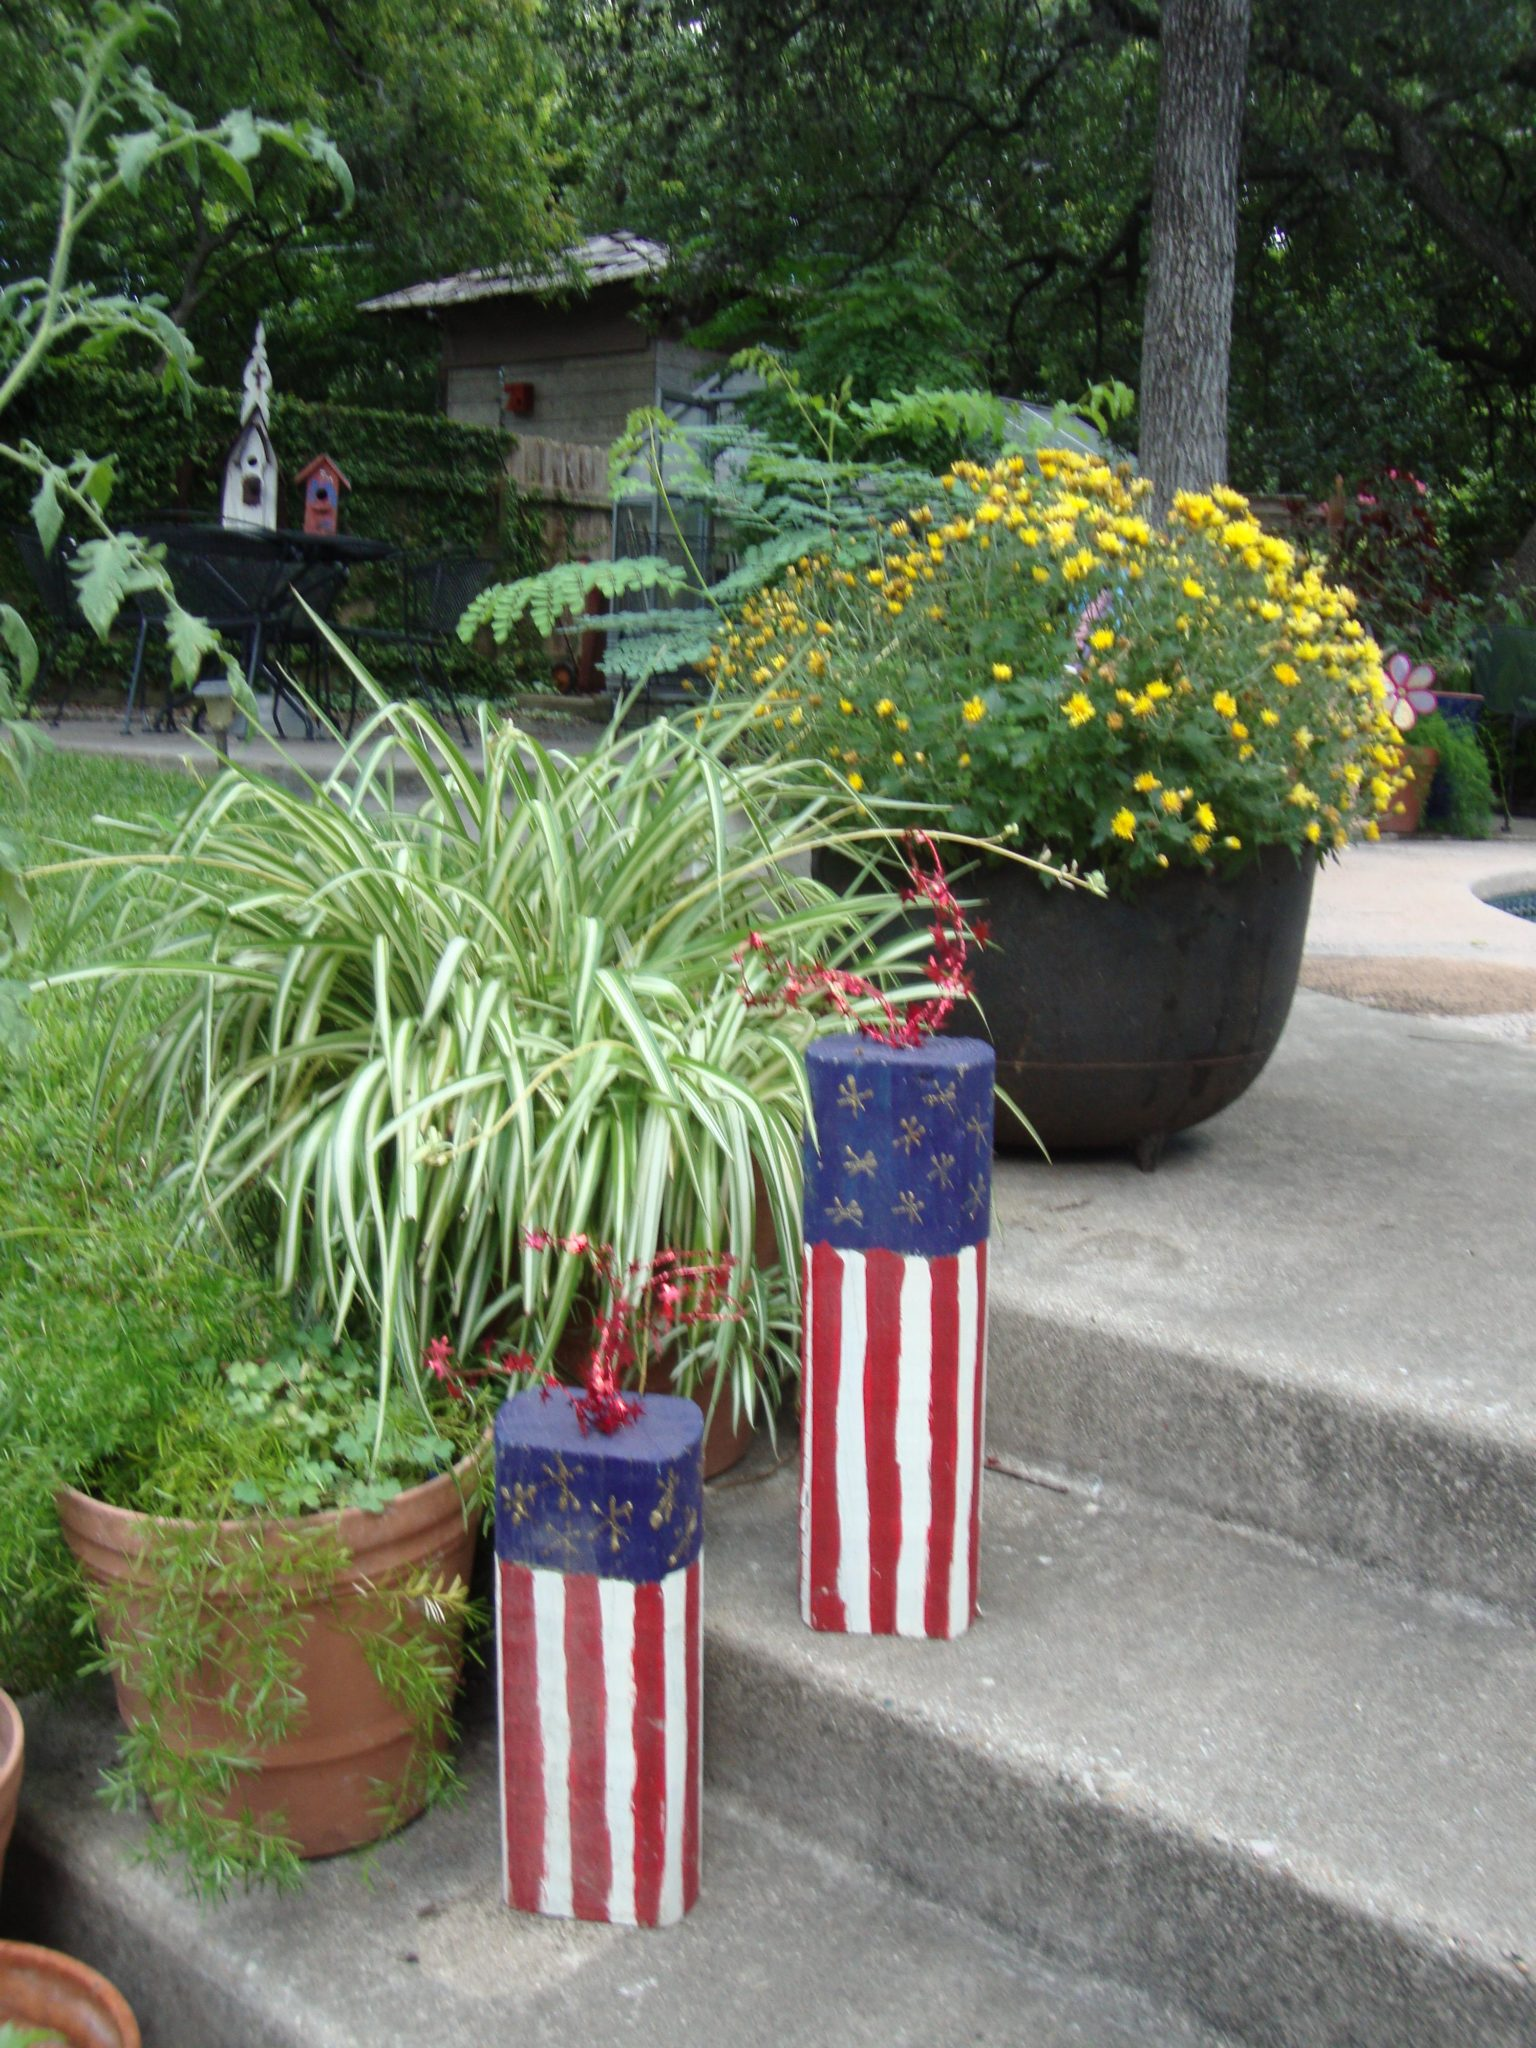 Firecrackers made from fence posts